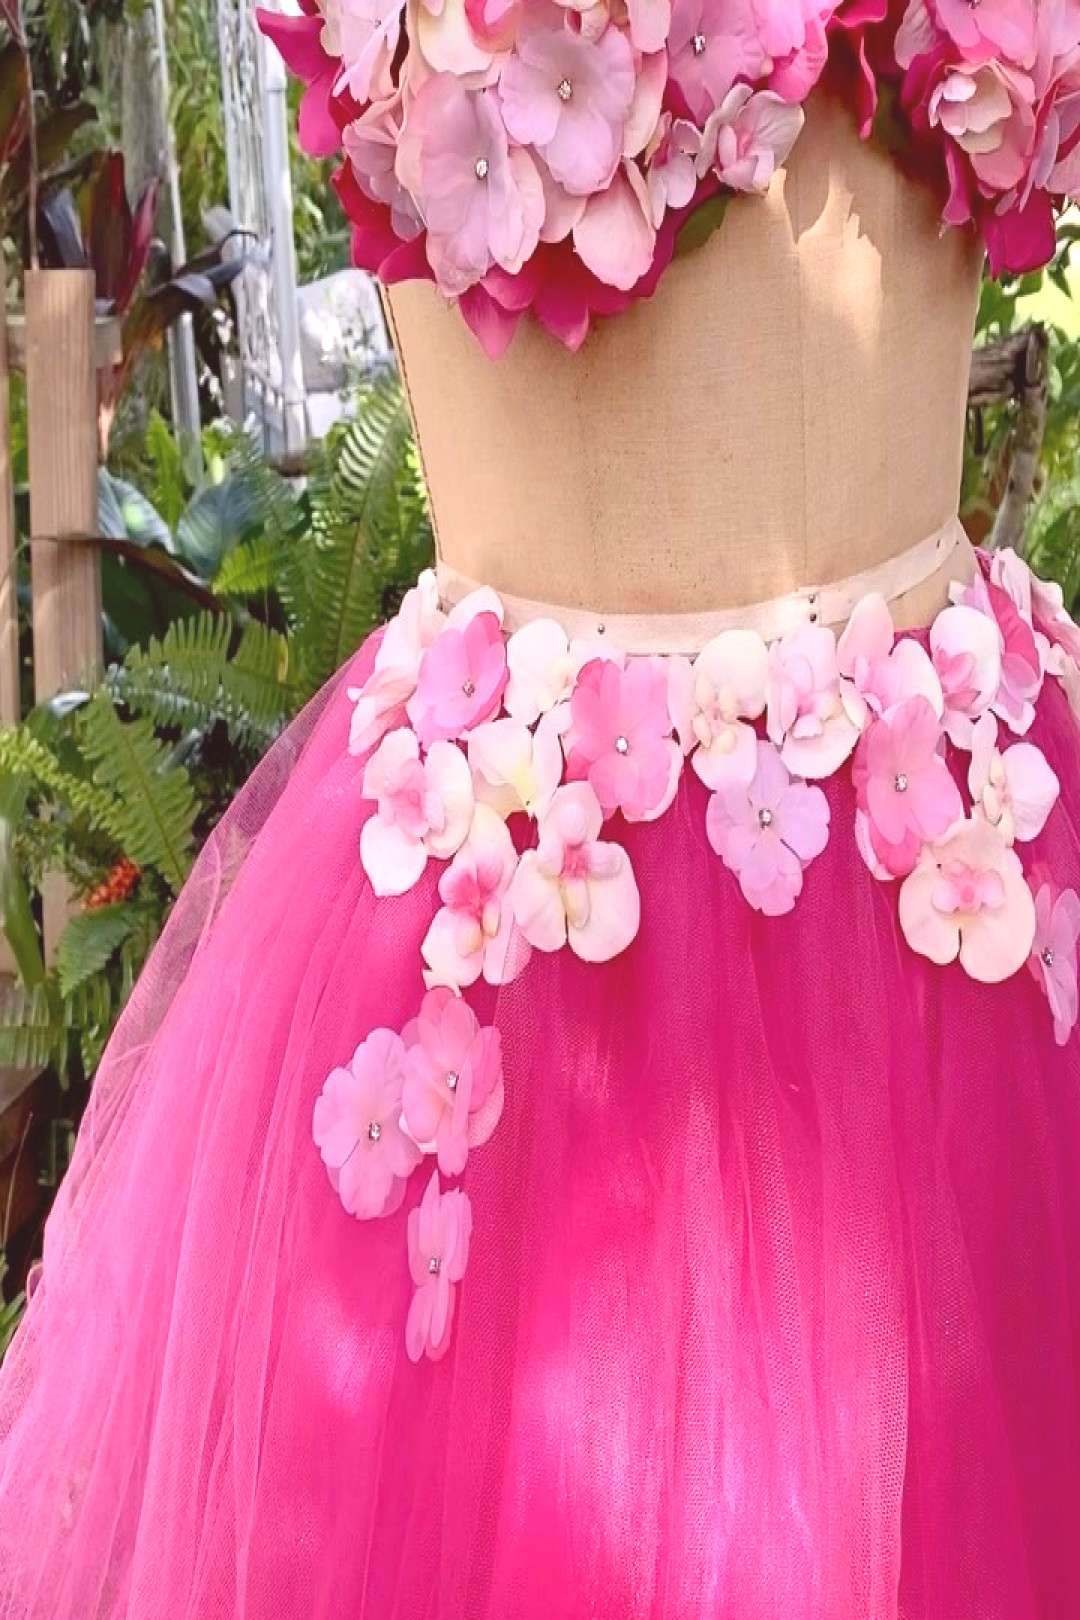 Our pink flowers fairy is available for rent